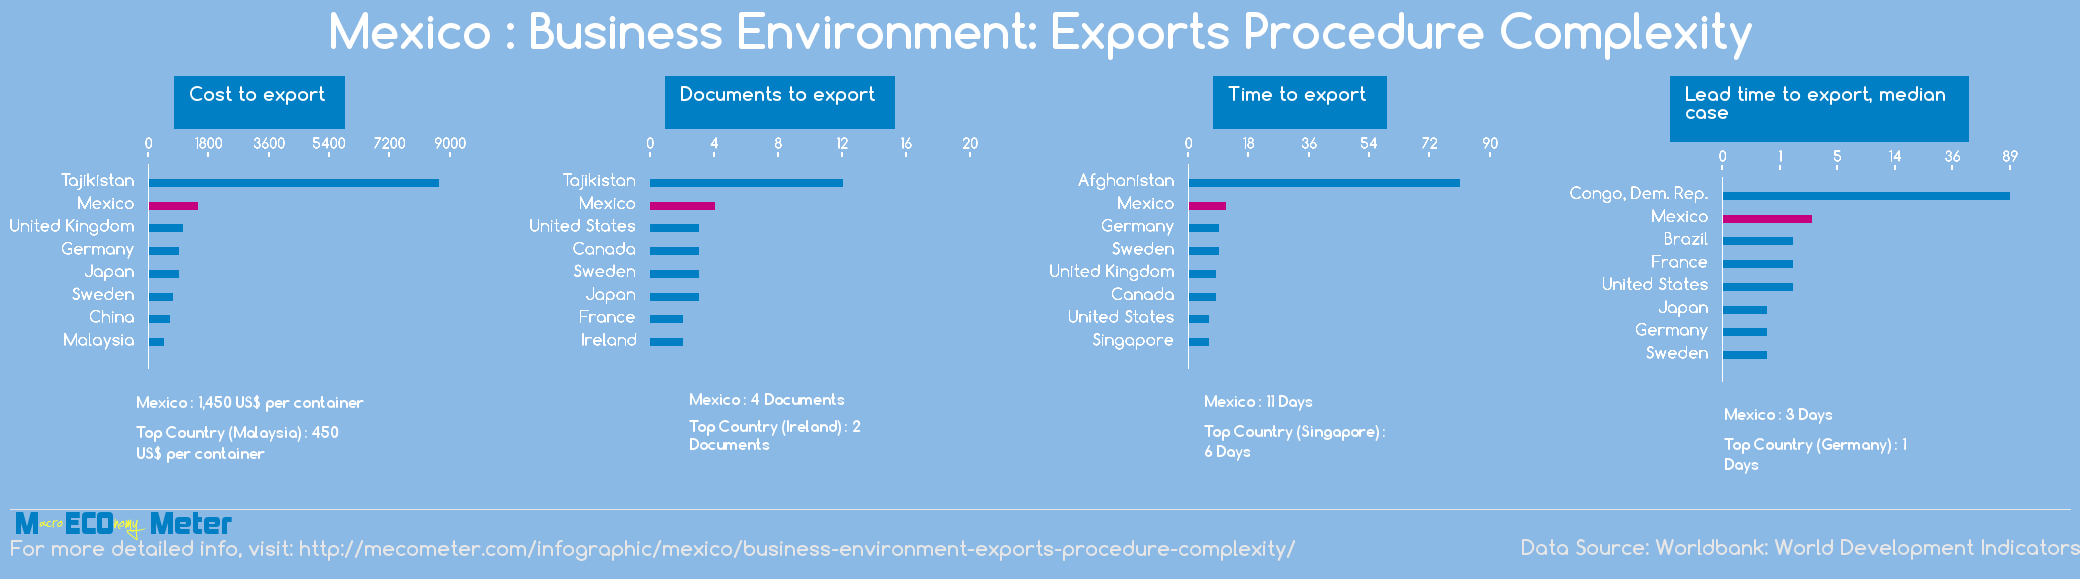 Mexico : Business Environment: Exports Procedure Complexity